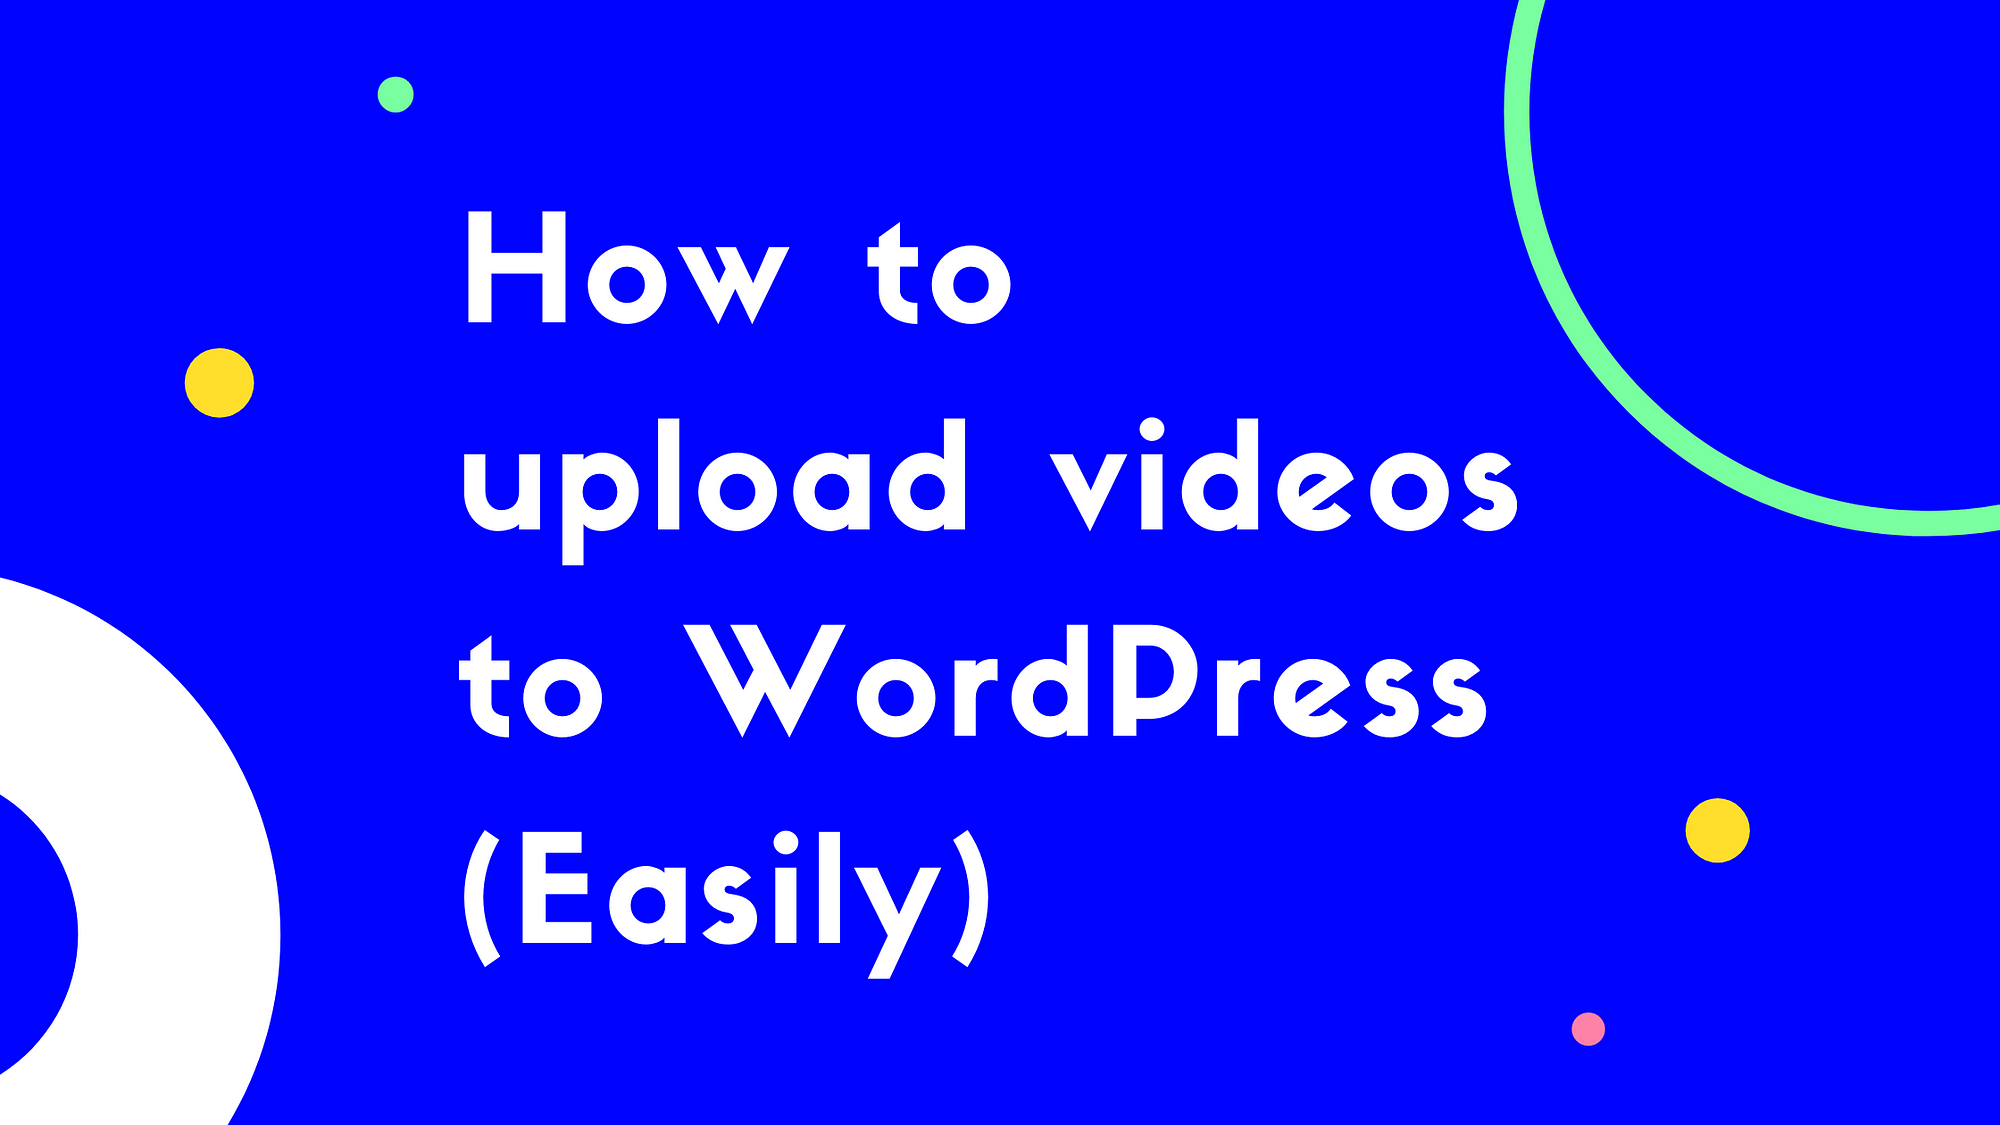 How to upload videos to WordPress